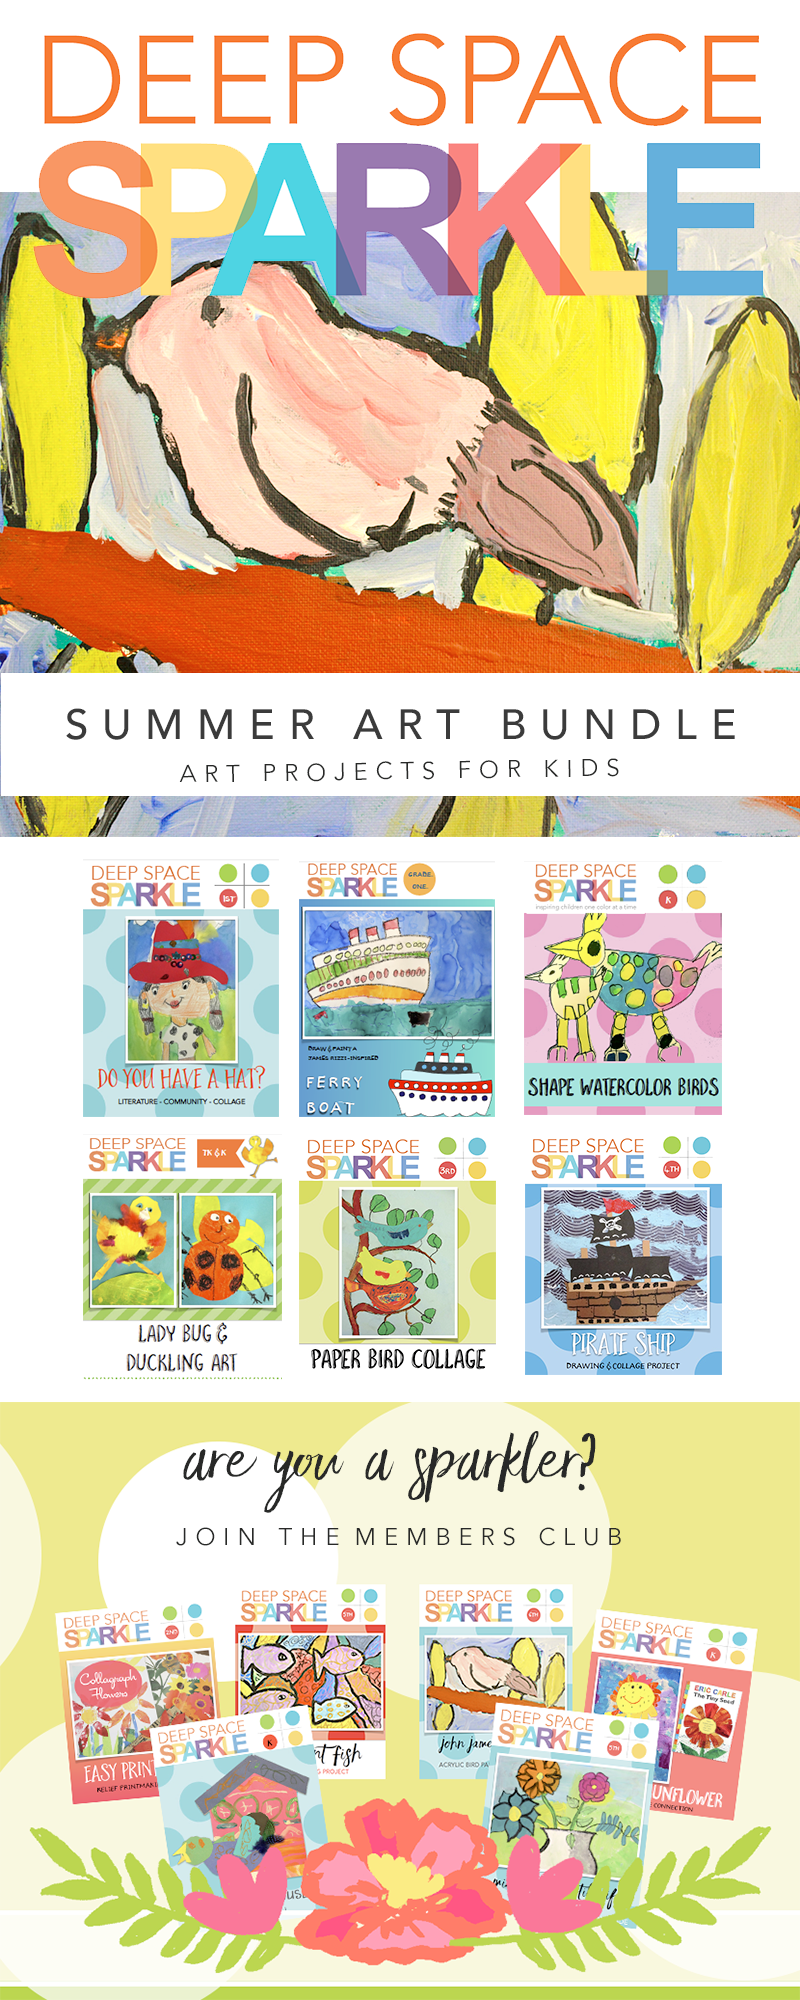 Summer Fun Art Bundle inside Deep Space Sparkle's Members Club